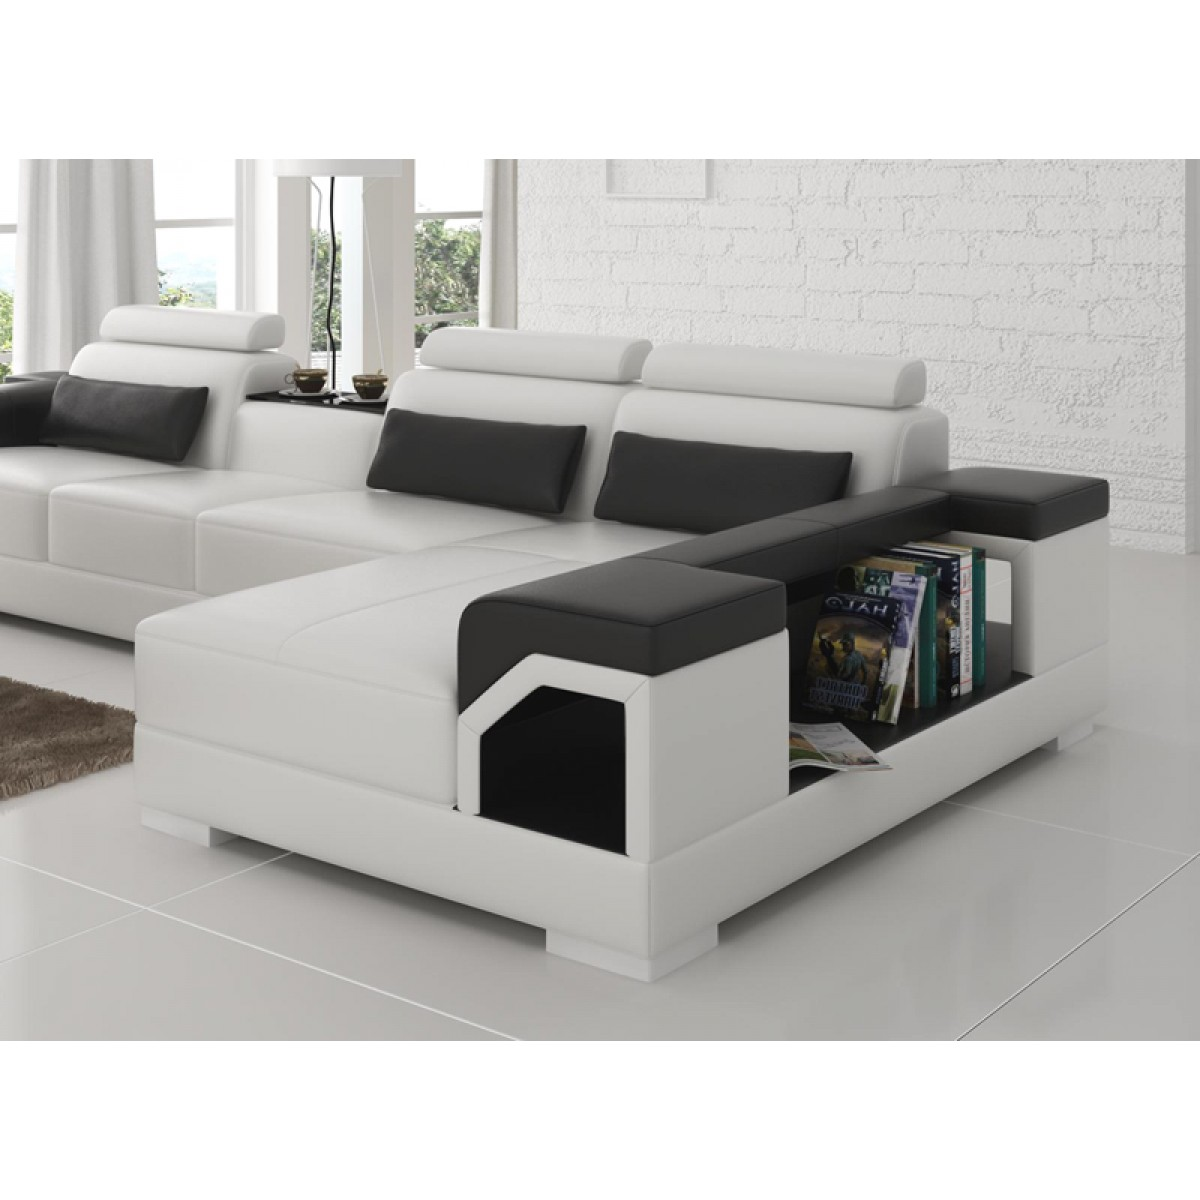 canap d 39 angle en cuir nimes option lit convertible. Black Bedroom Furniture Sets. Home Design Ideas